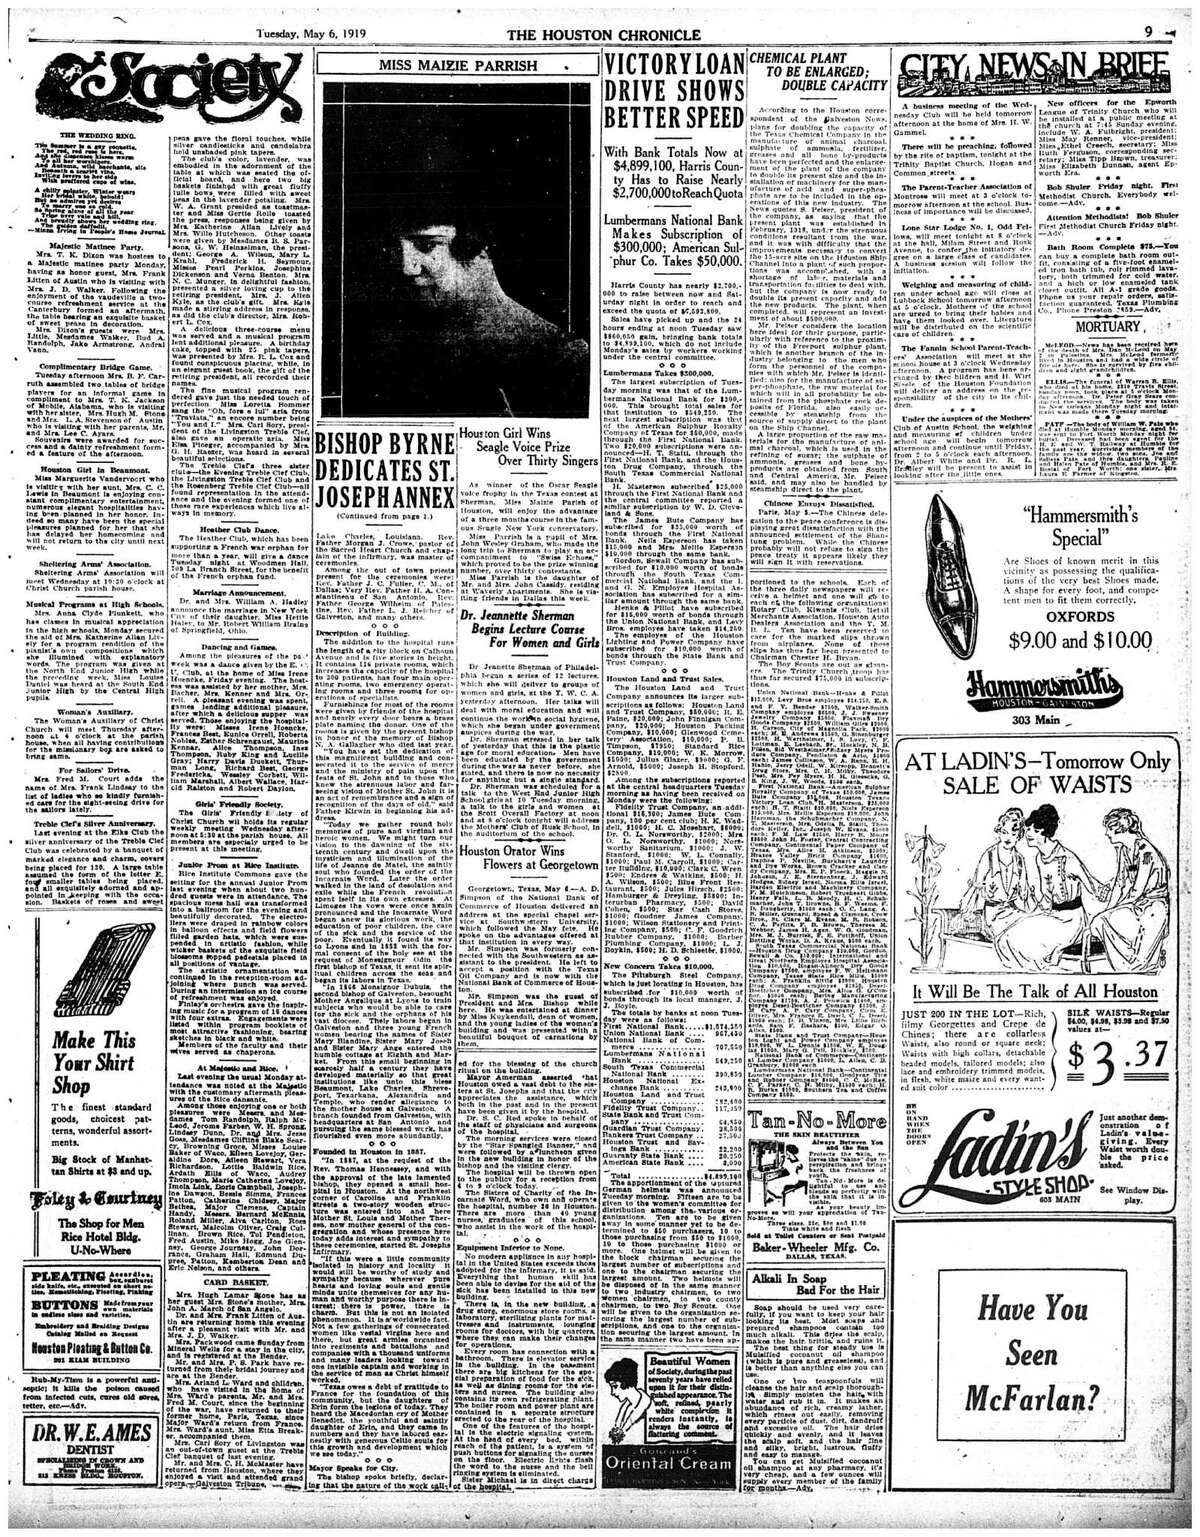 Houston Chronicle inside page (HISTORIC) - May 6, 1919 - section 1, page 9. BISHOP BYRNE DEDICATES ST. JOSEPH ANNEX (St. Joseph Hospital)